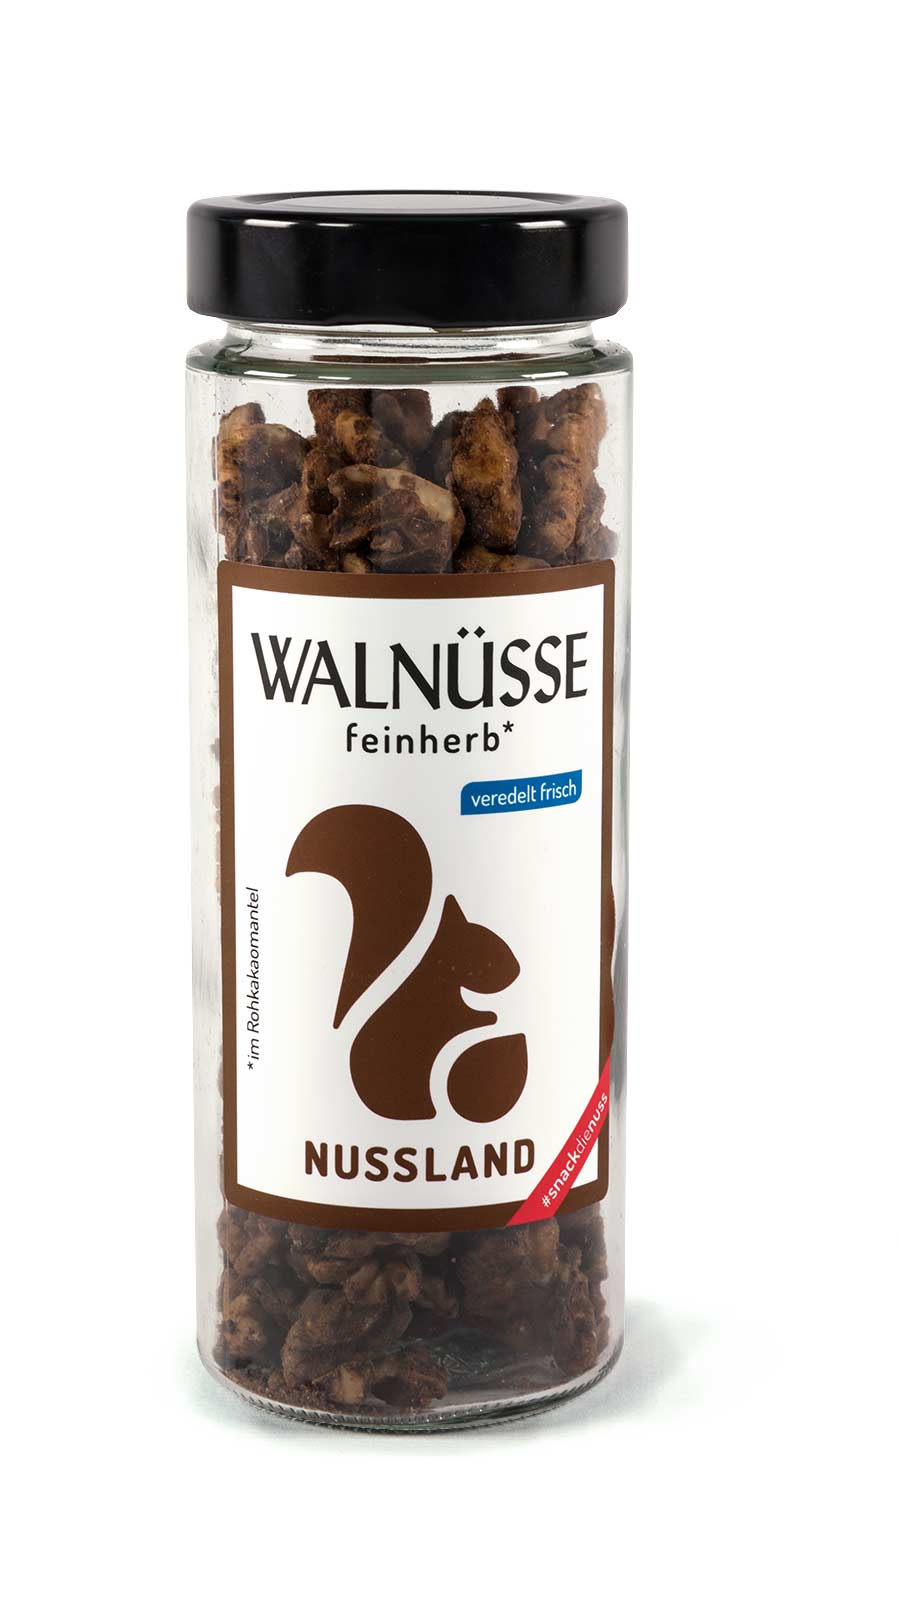 Walnuss-Snack 'feinherb'